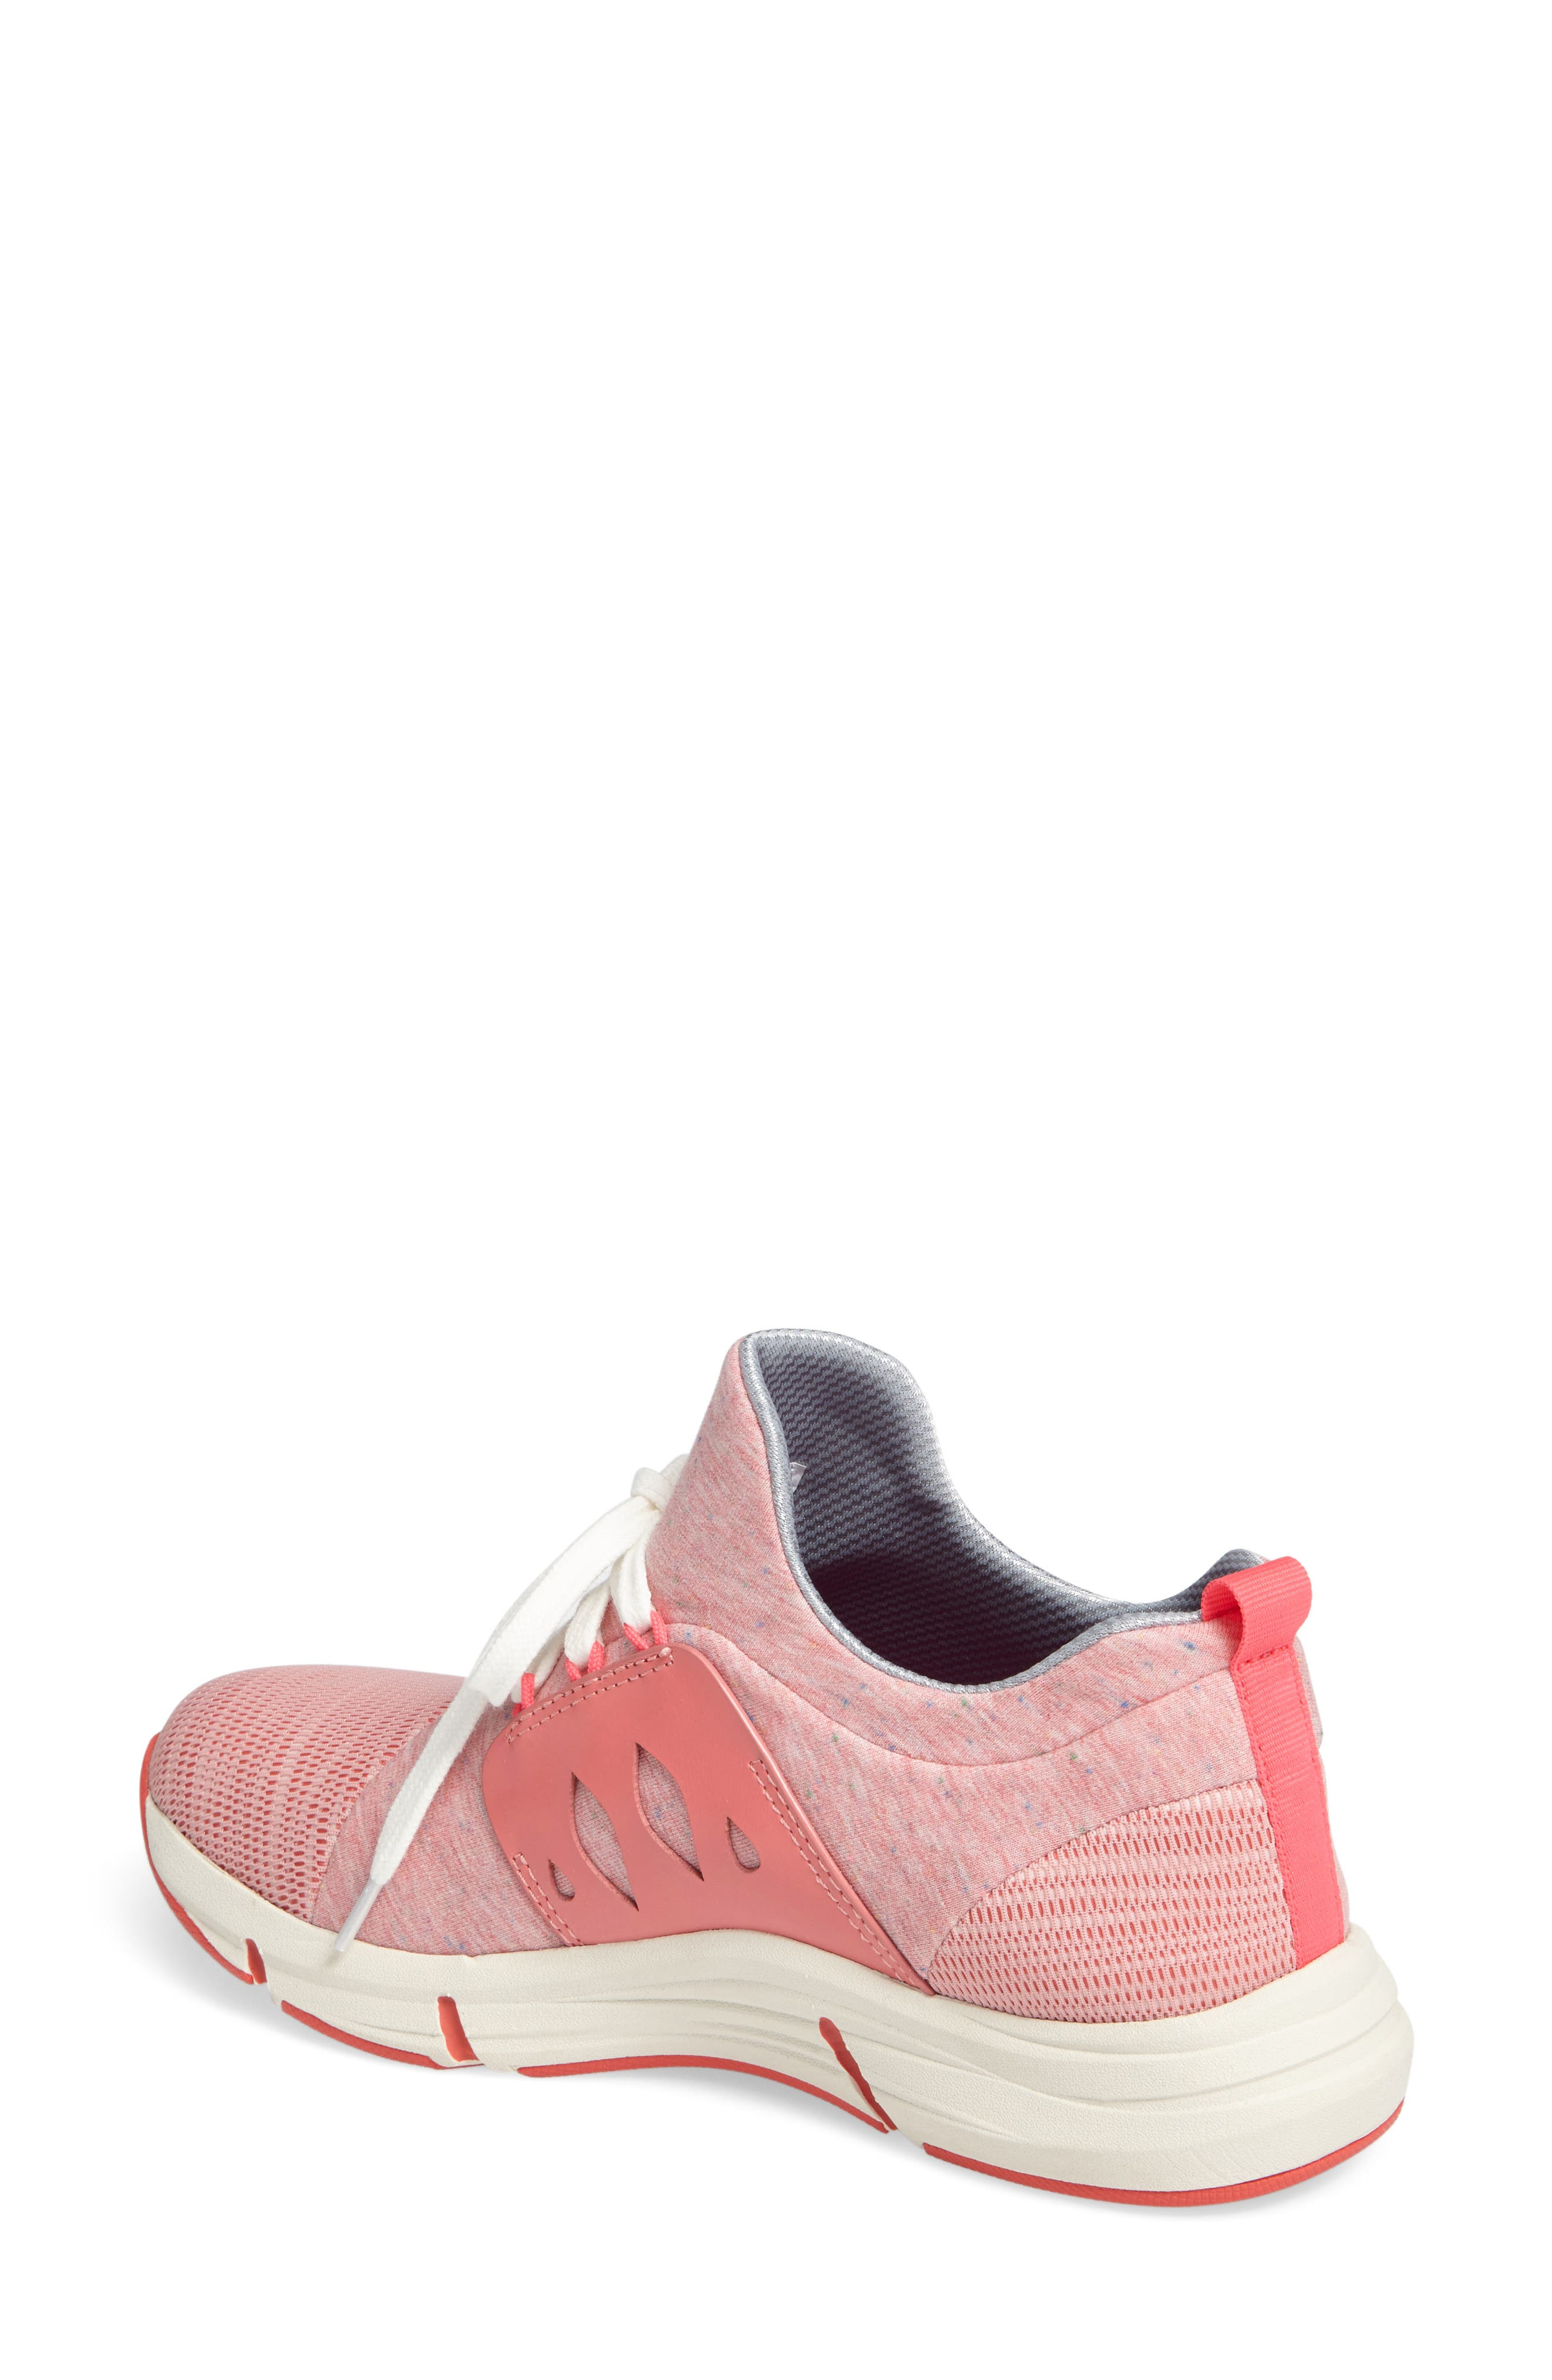 Ordell Sneaker,                             Alternate thumbnail 2, color,                             PINK FABRIC